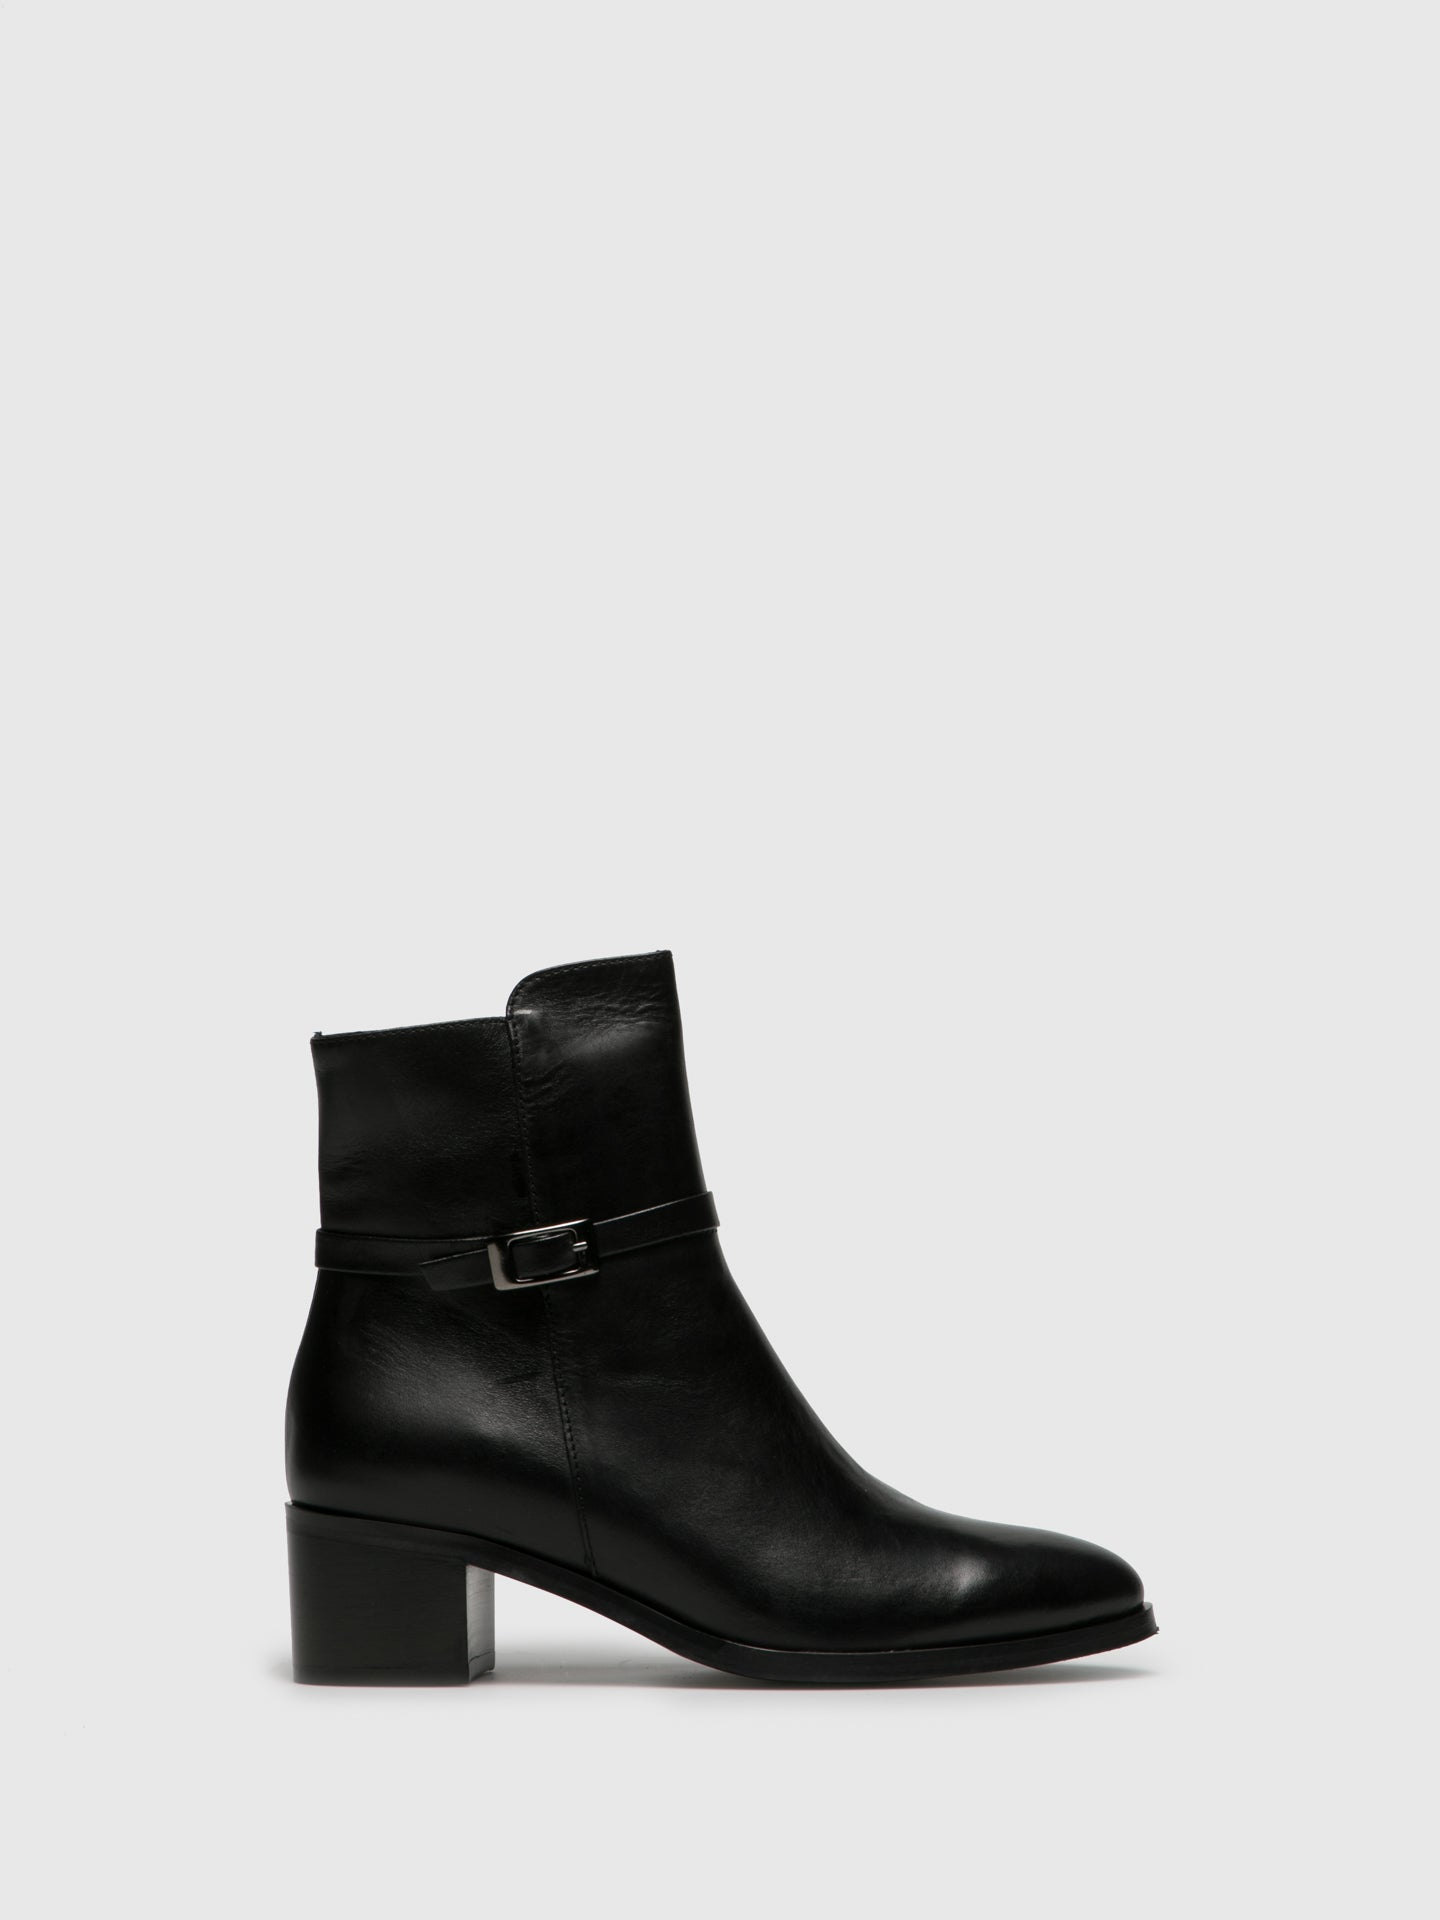 PintoDiBlu Black Leather Zip Up Ankle Boots